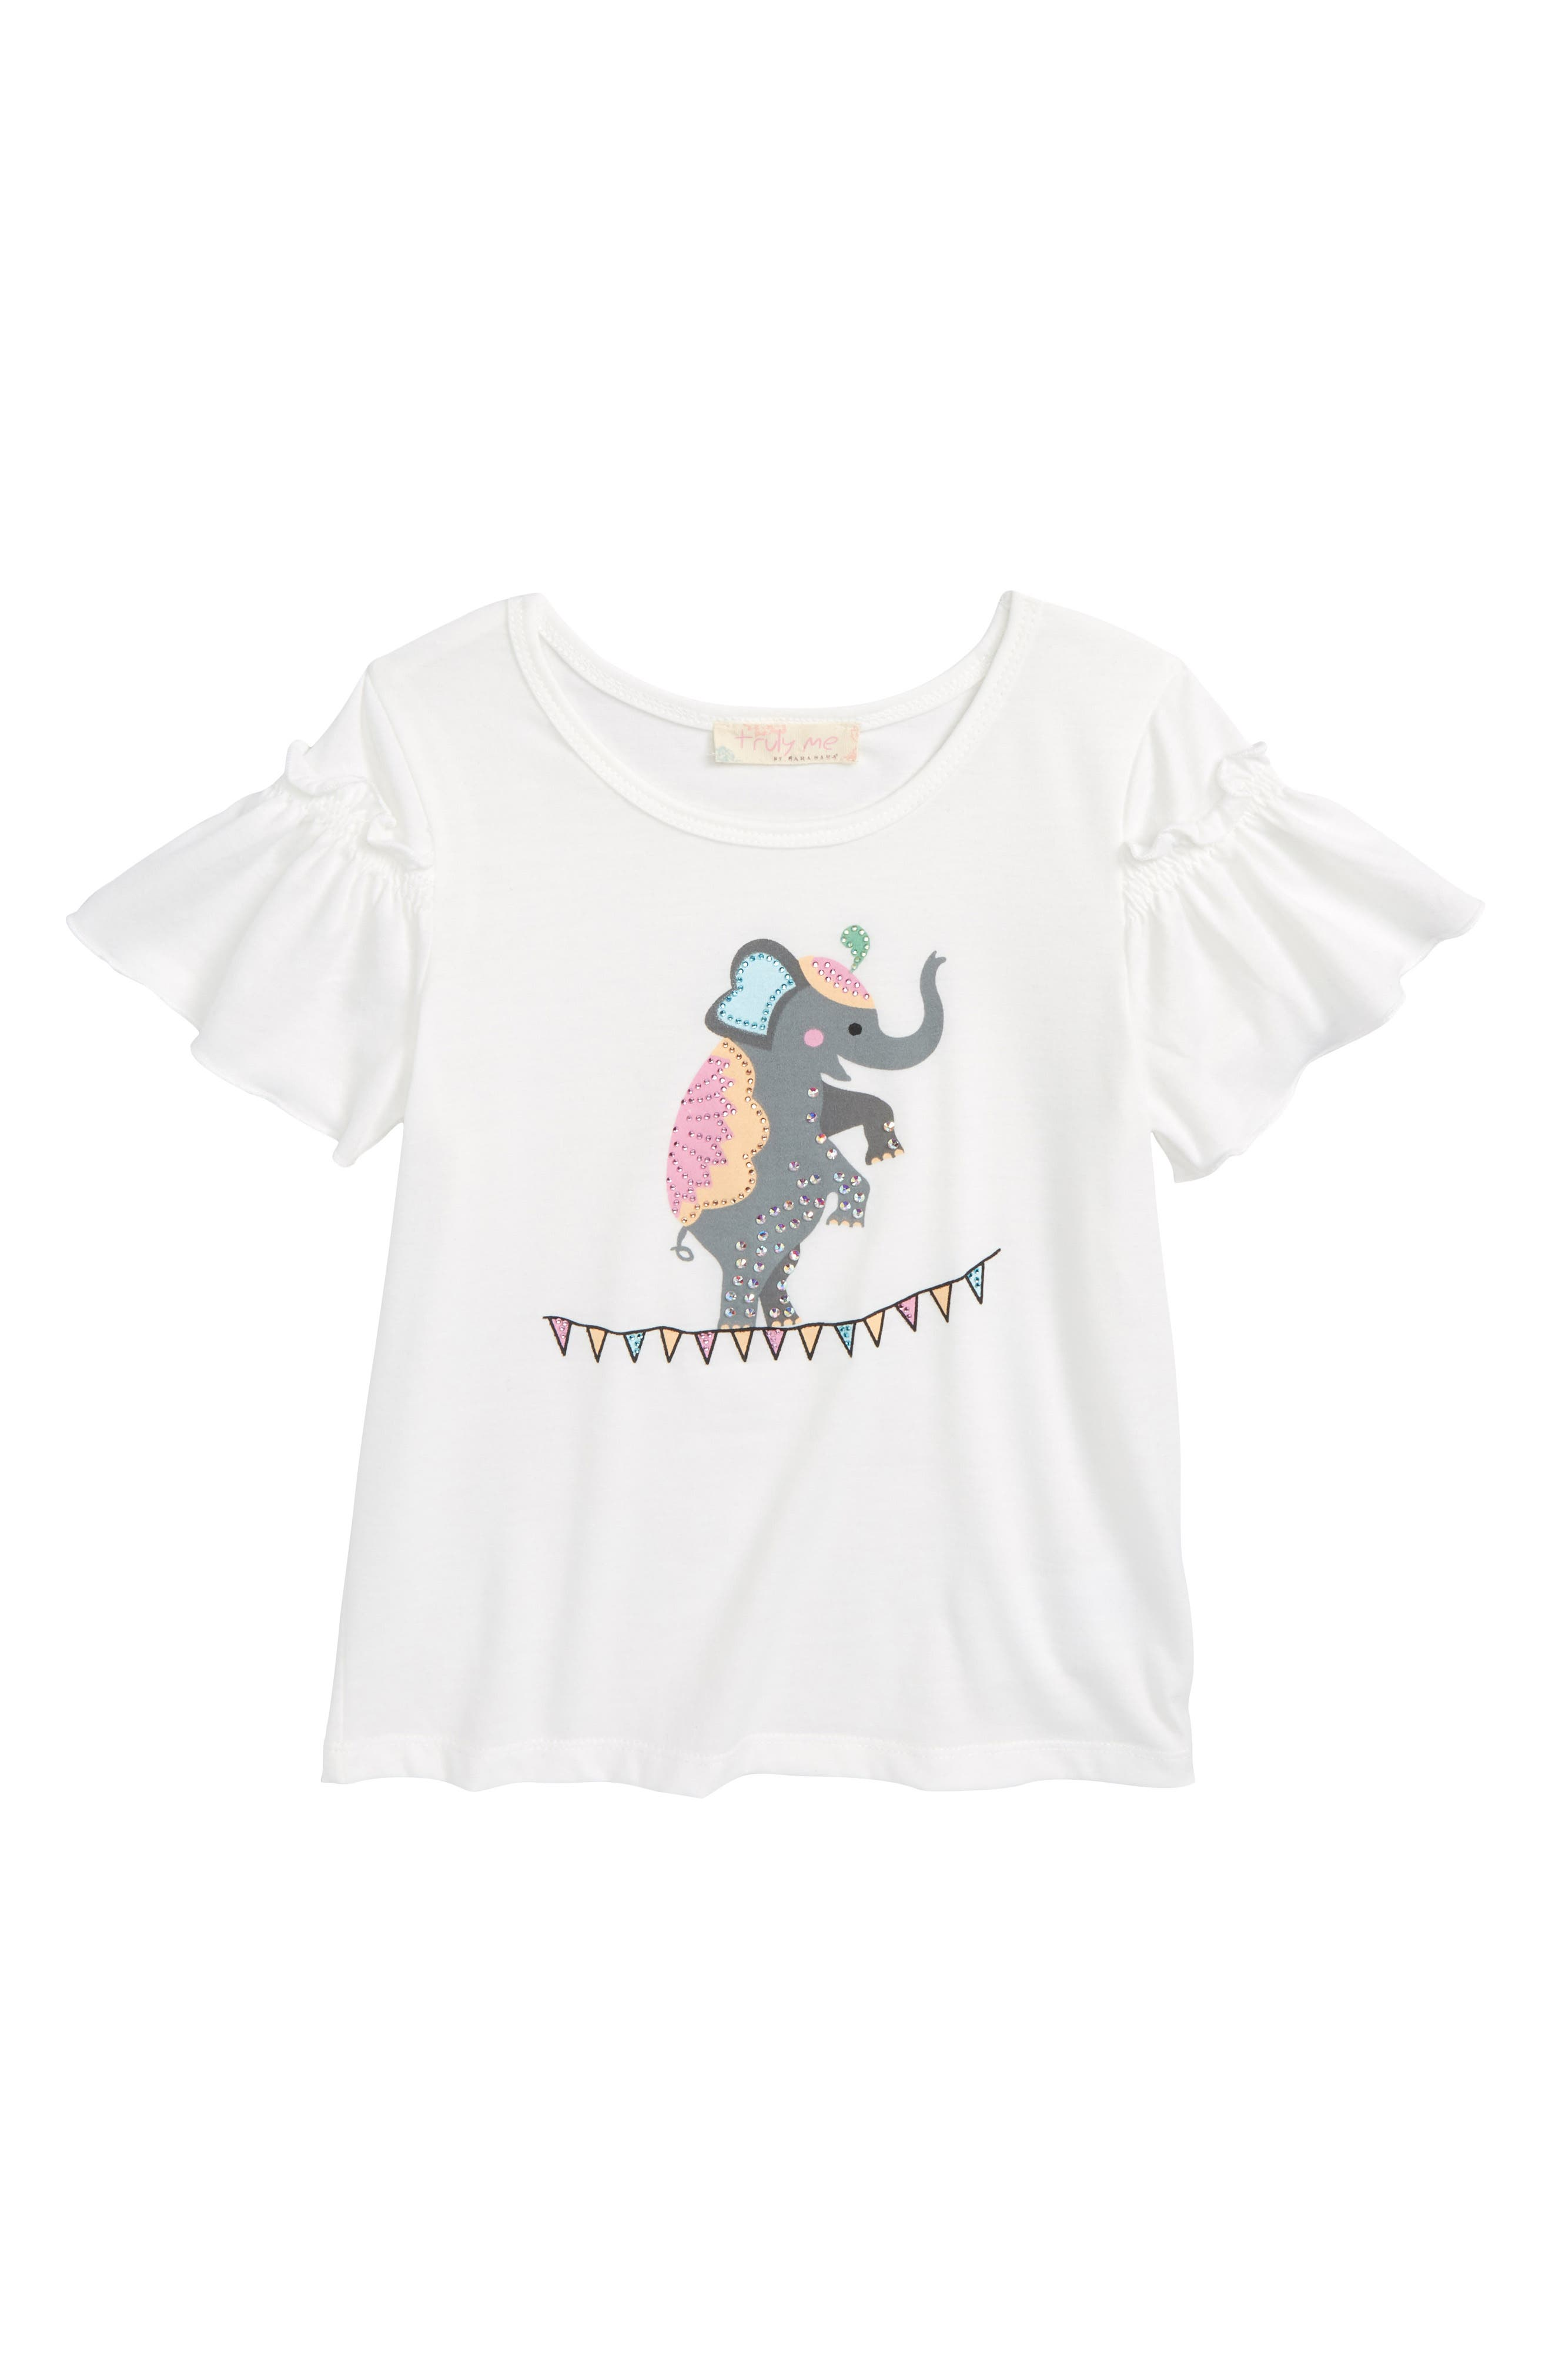 Truly Me Embellished Elephant Graphic Tee (Toddler Girls & Little Girls)